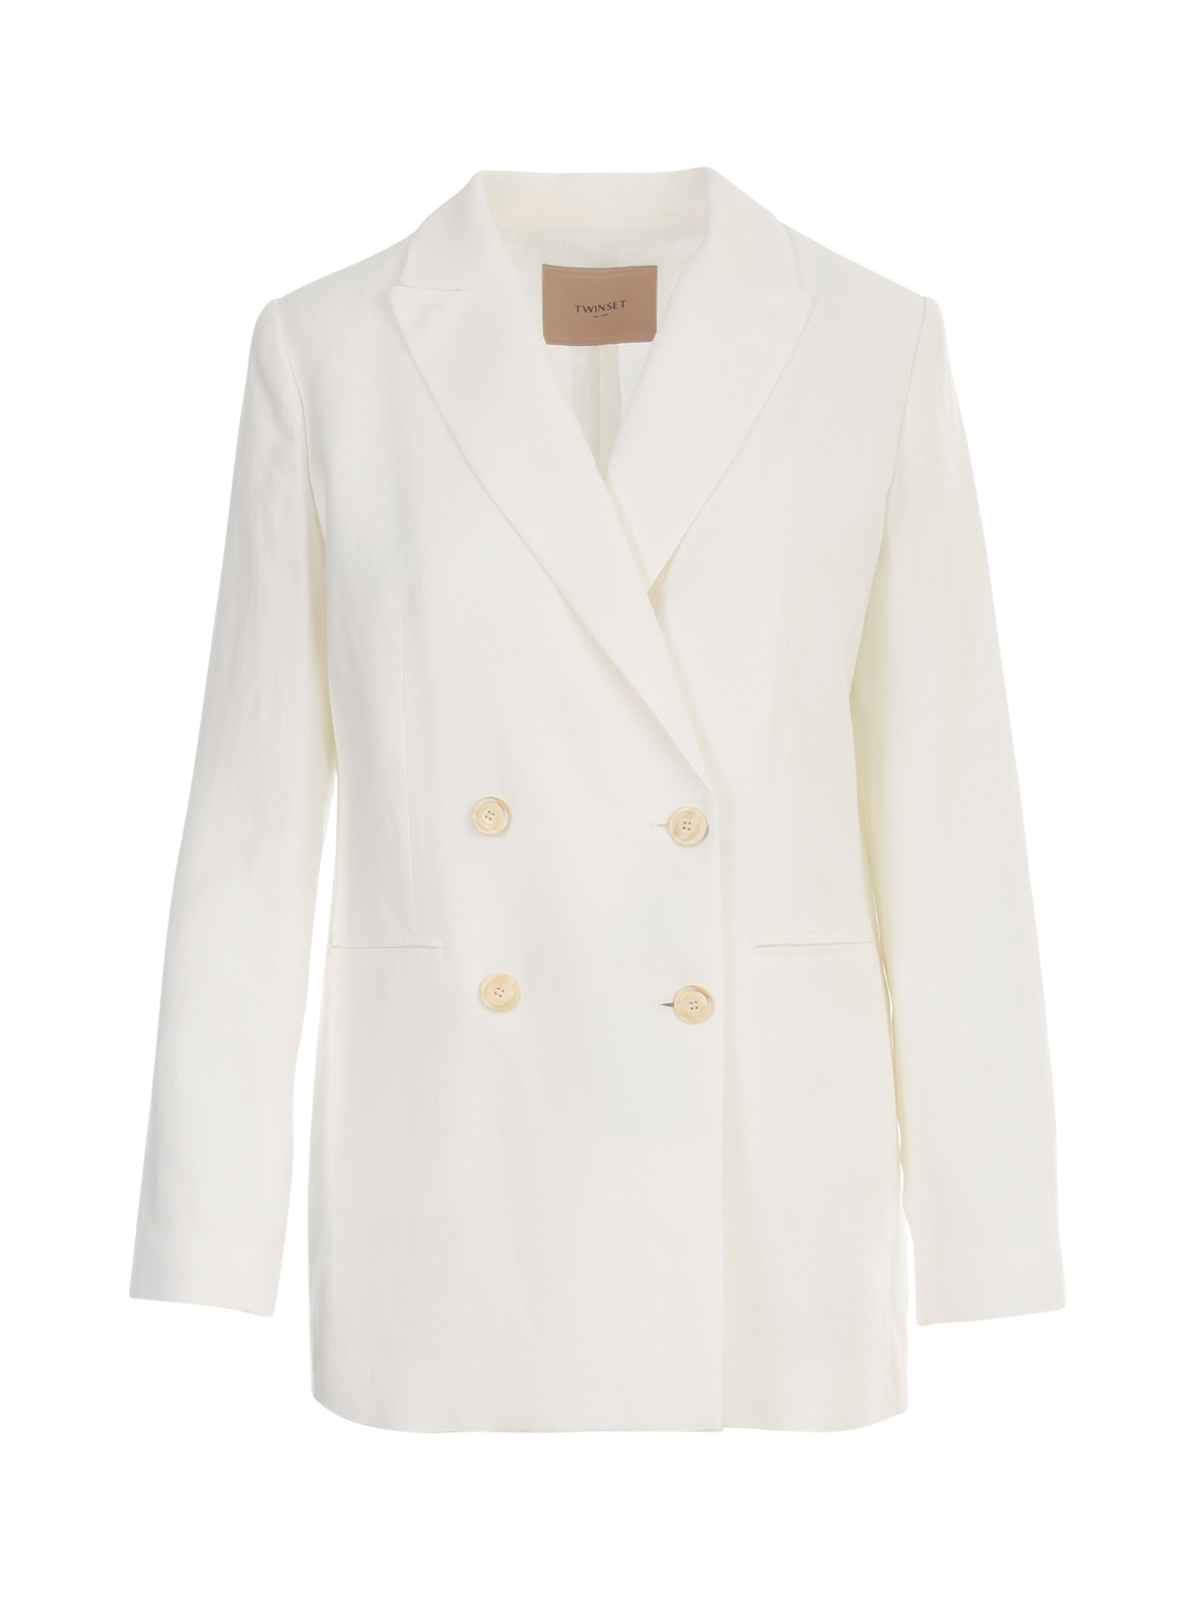 Picture of Twinset Jacket